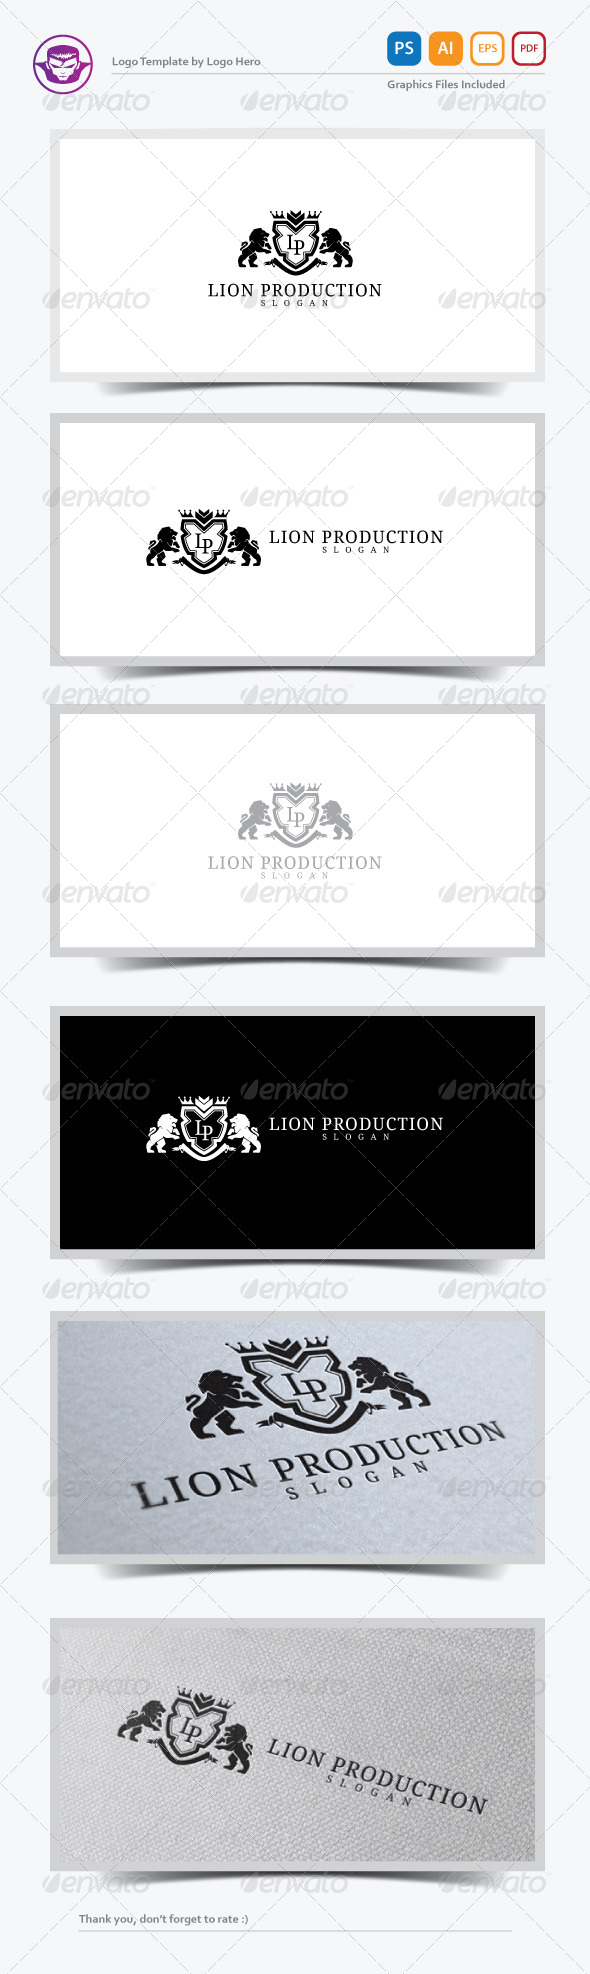 GraphicRiver Lion Production Logo Template 7546771